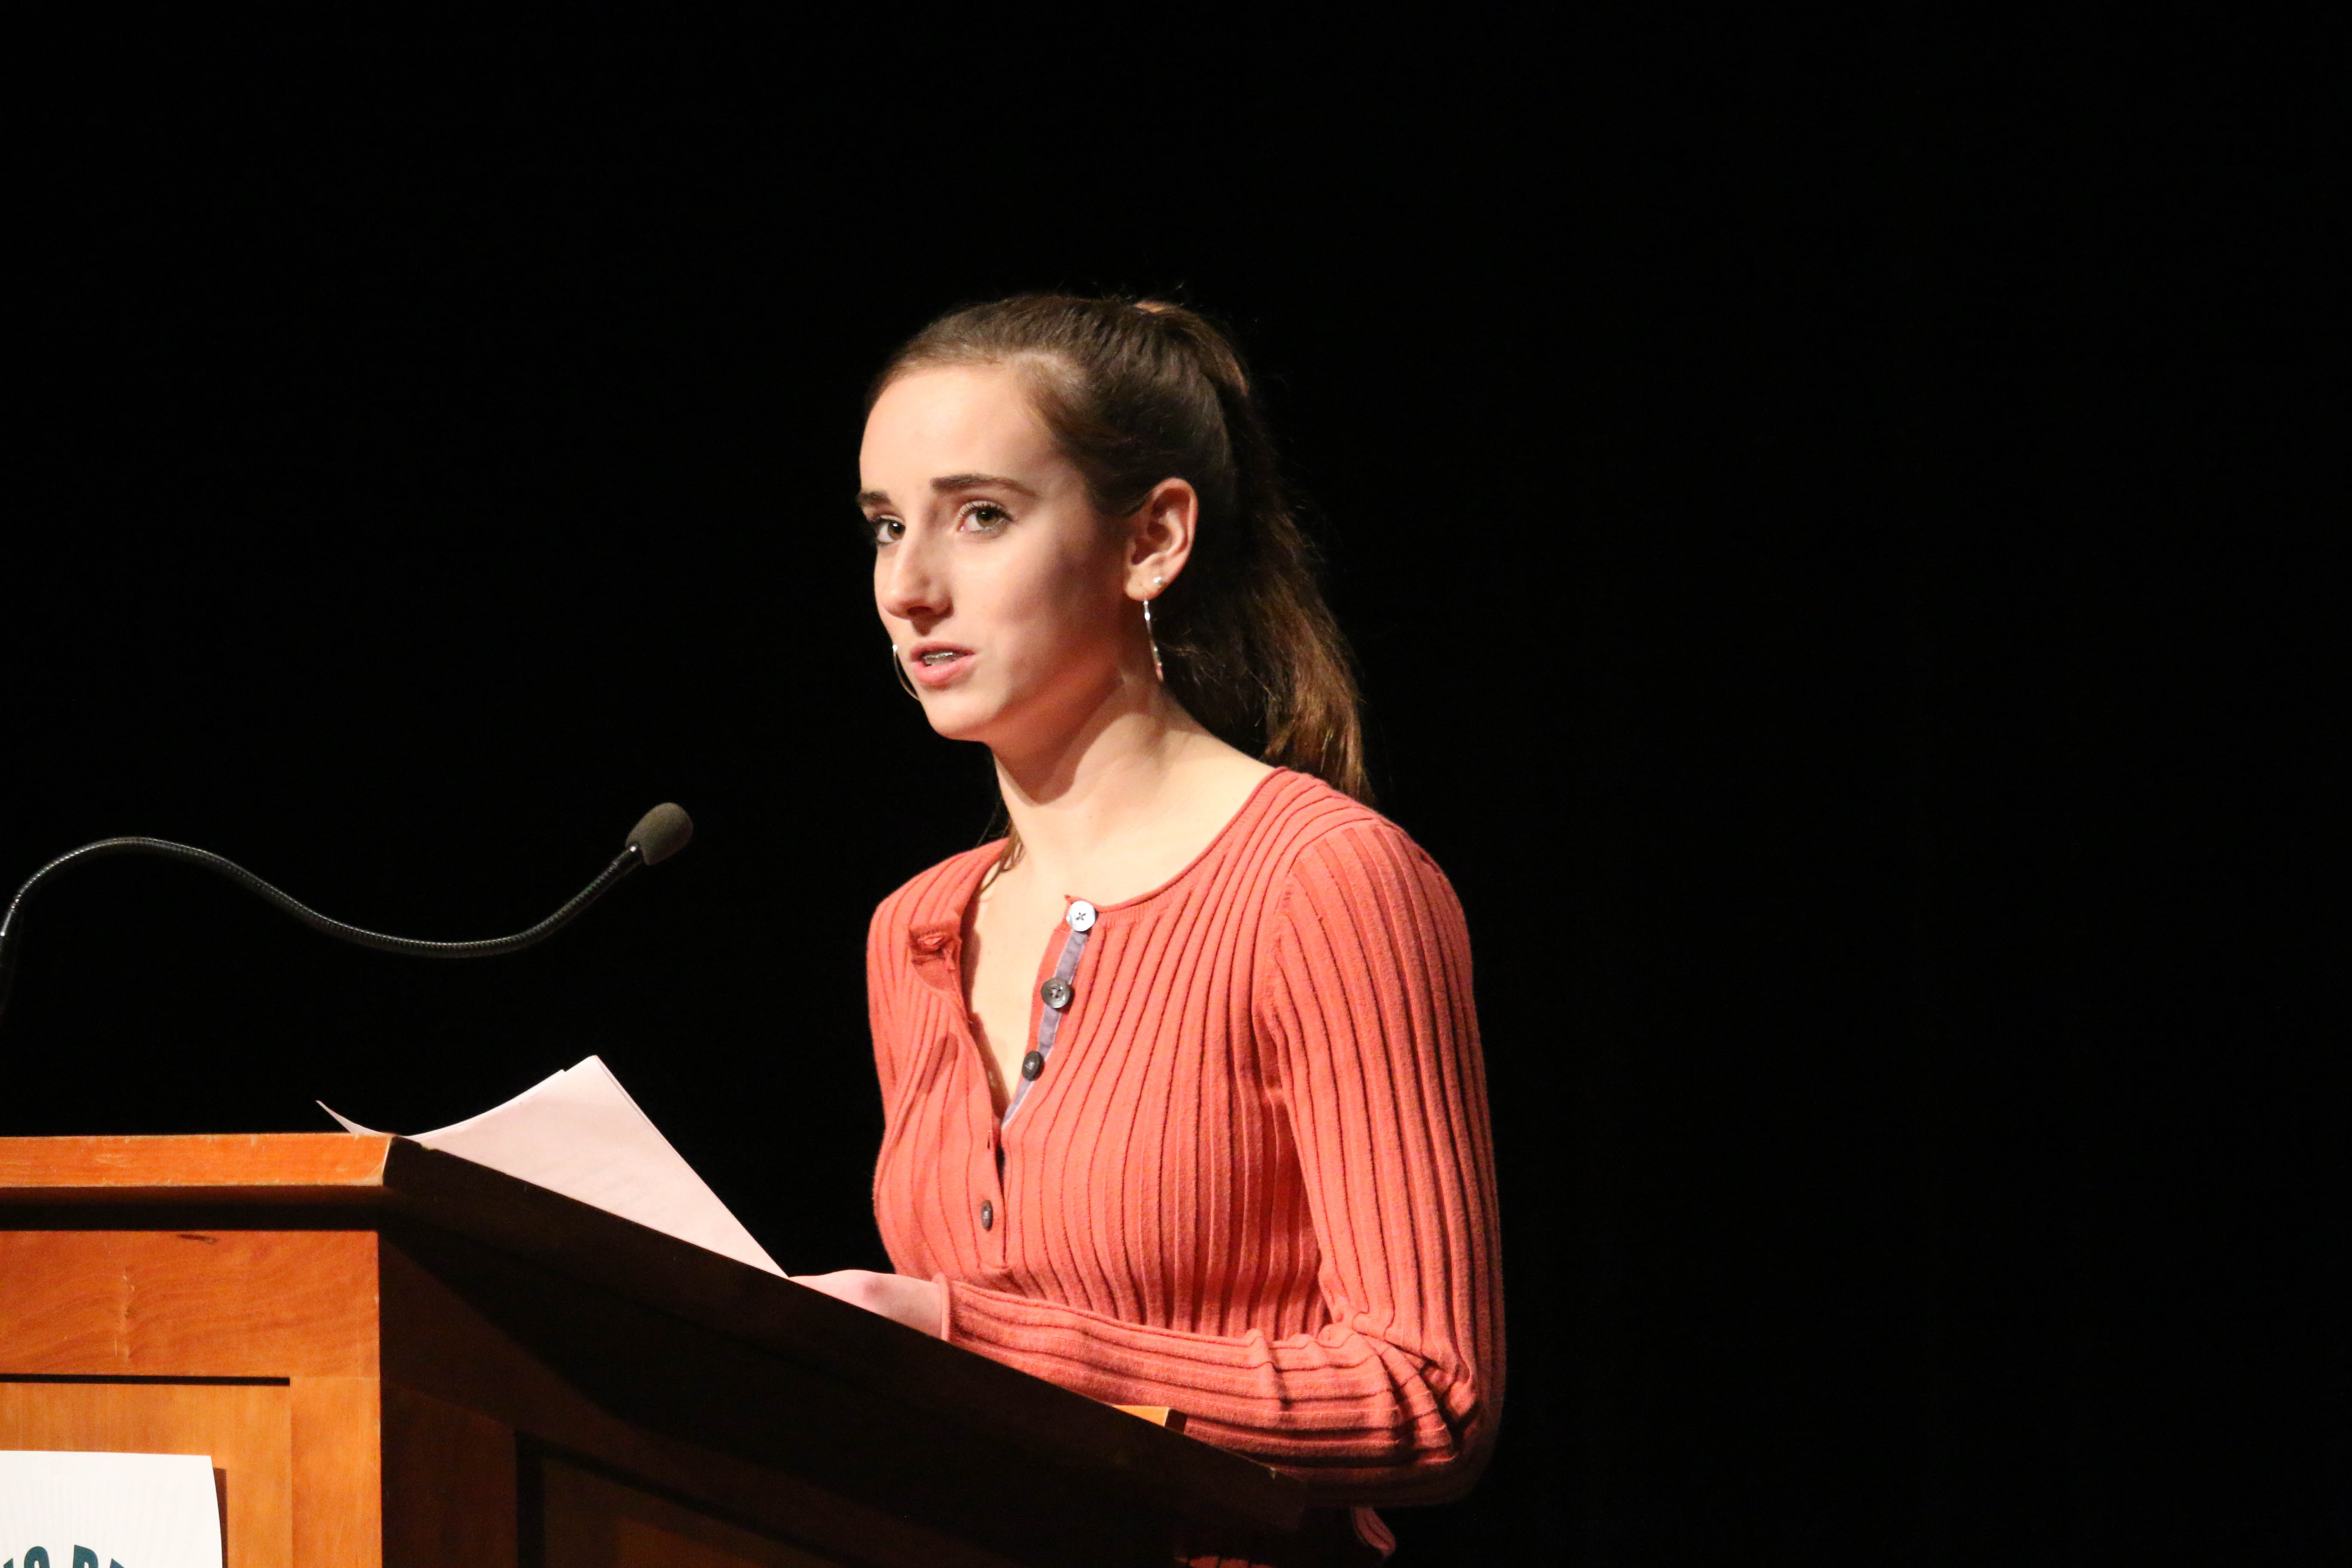 Proctor Academy Hays Speaking Contest